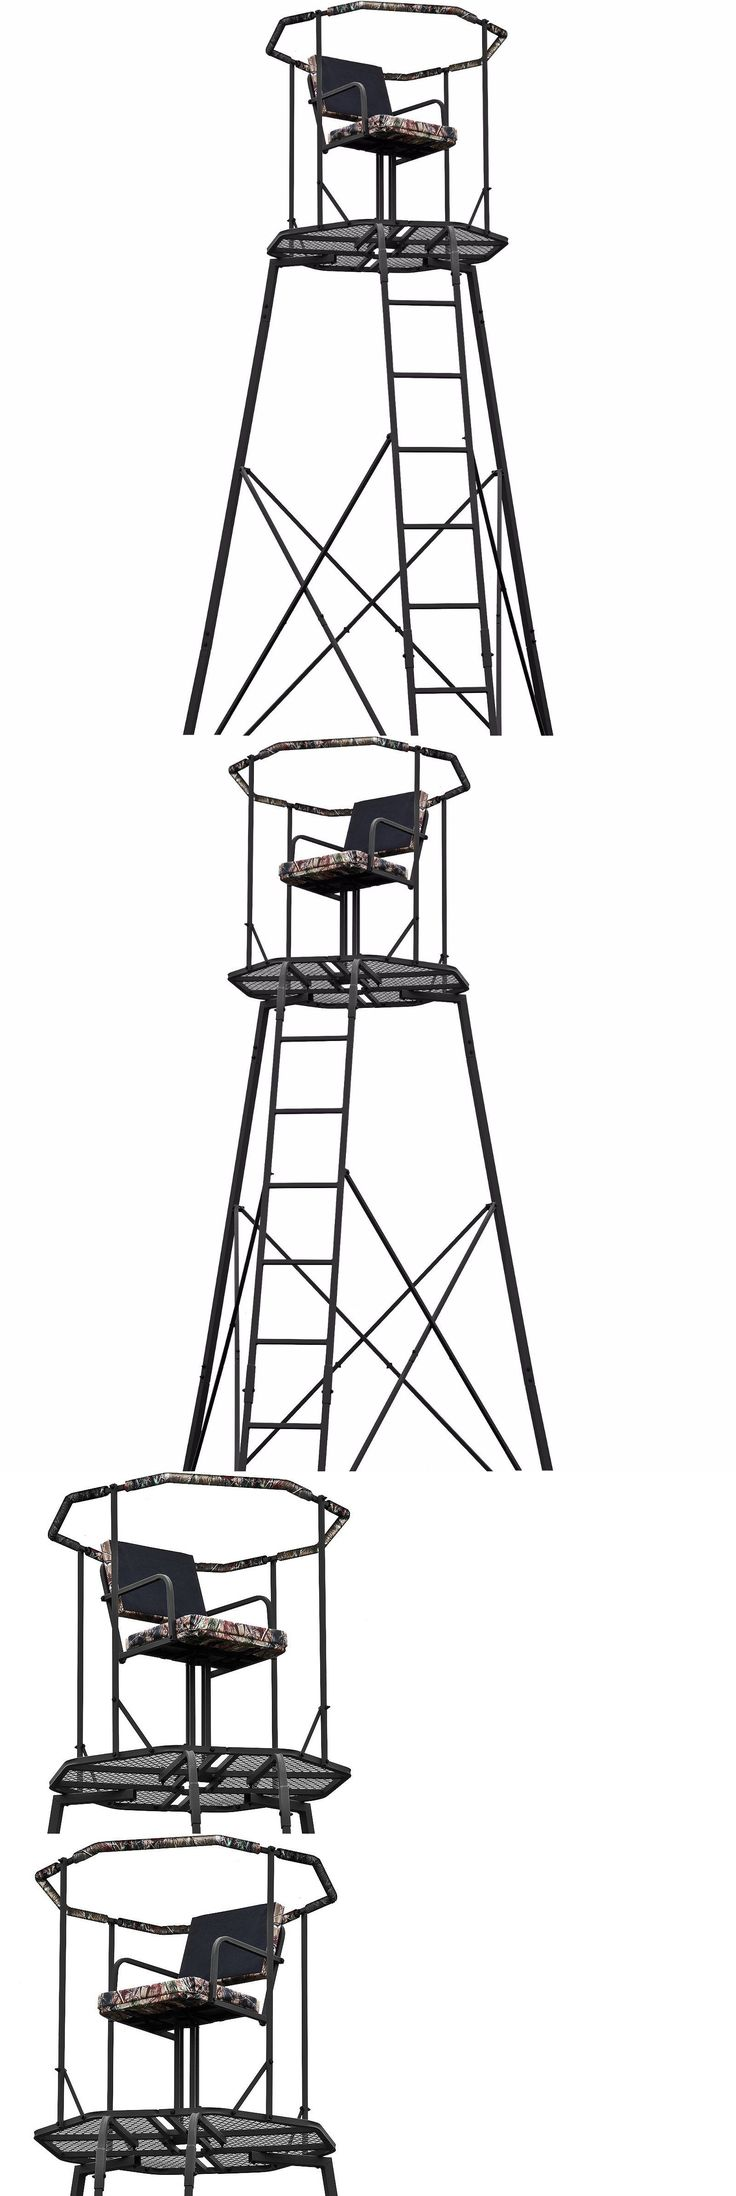 Tree Stands 52508: Treestand Tripod Tree Stand Hunting Ladder Seat 15 Deer Bow Real Outdoor -> BUY IT NOW ONLY: $610.06 on eBay!